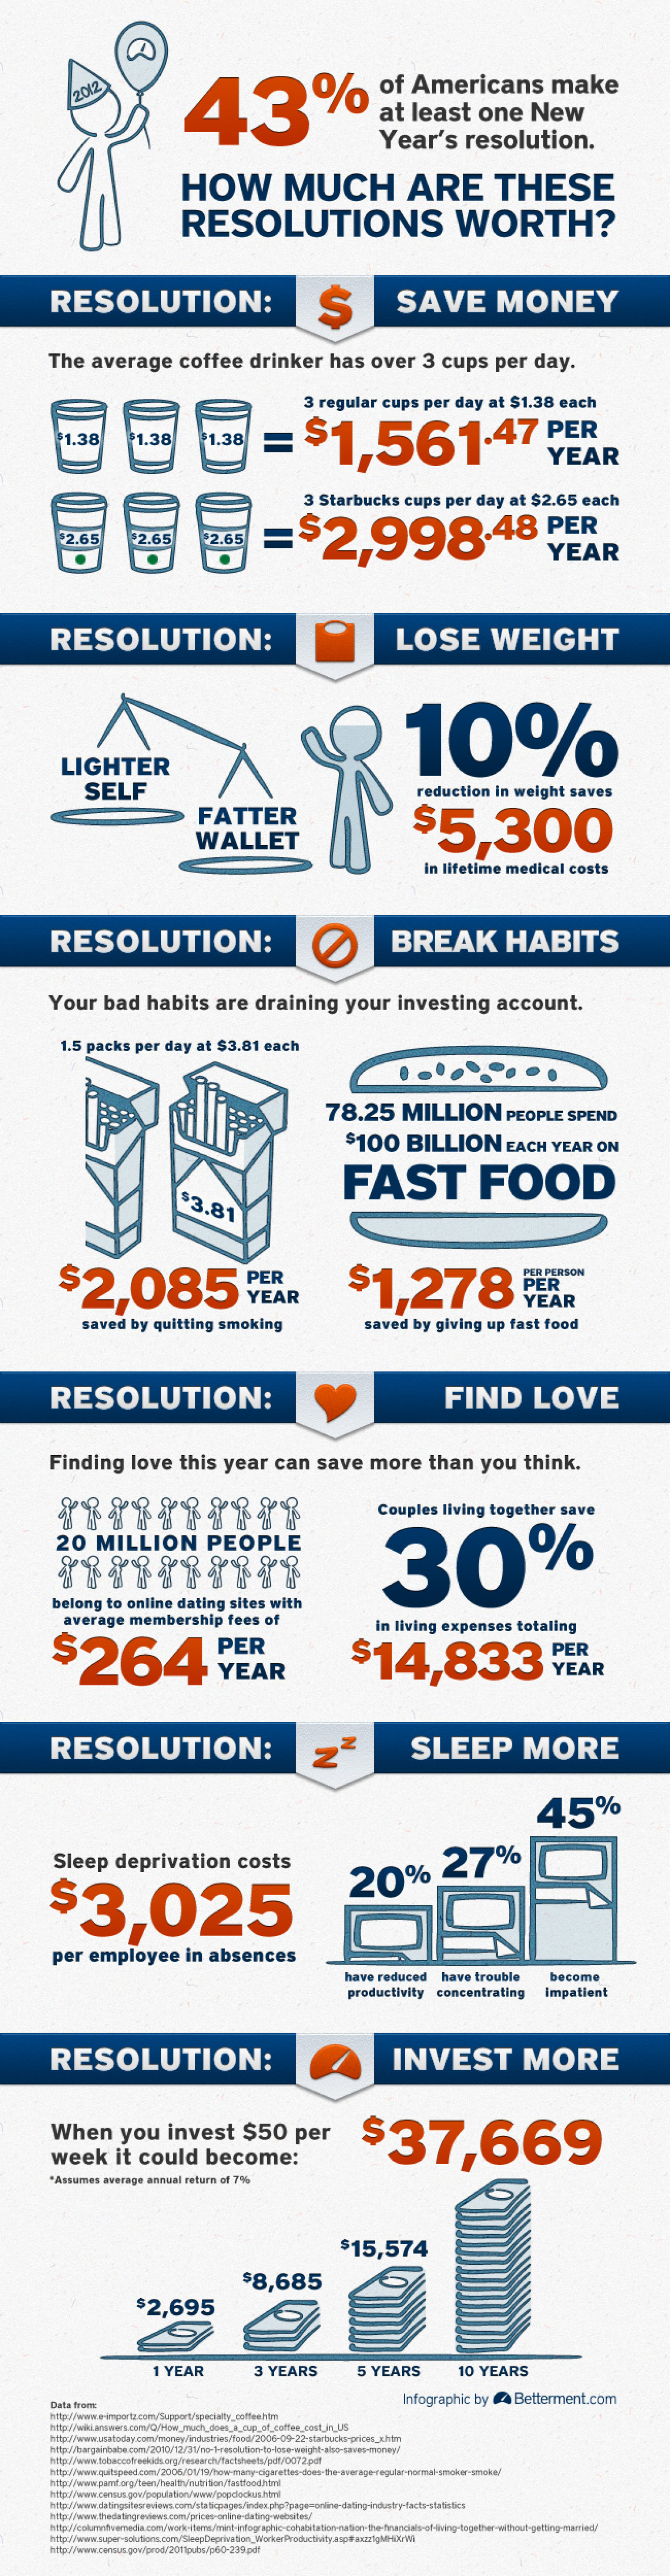 How Much are your New Year's Resolutions worth? Infographic